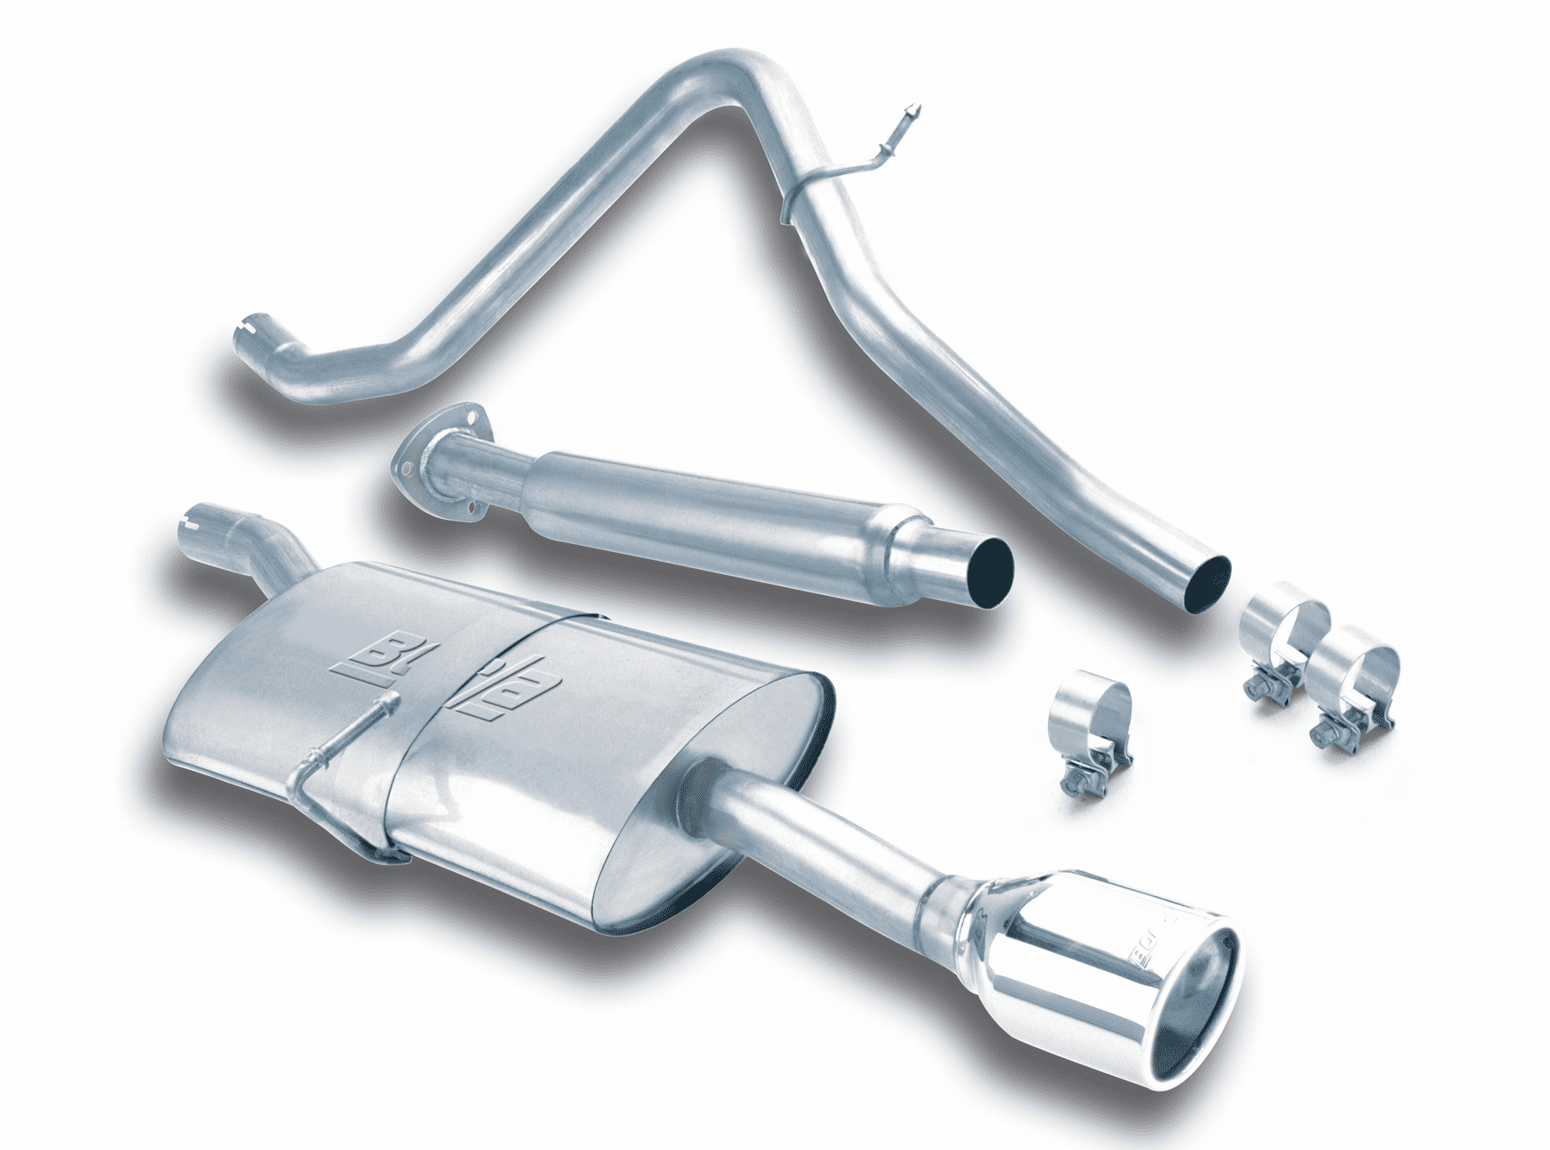 Borla Cat-Back Exhaust System for the 1996 - 2005 Chevrolet Cavalier and Pontiac Sunfire